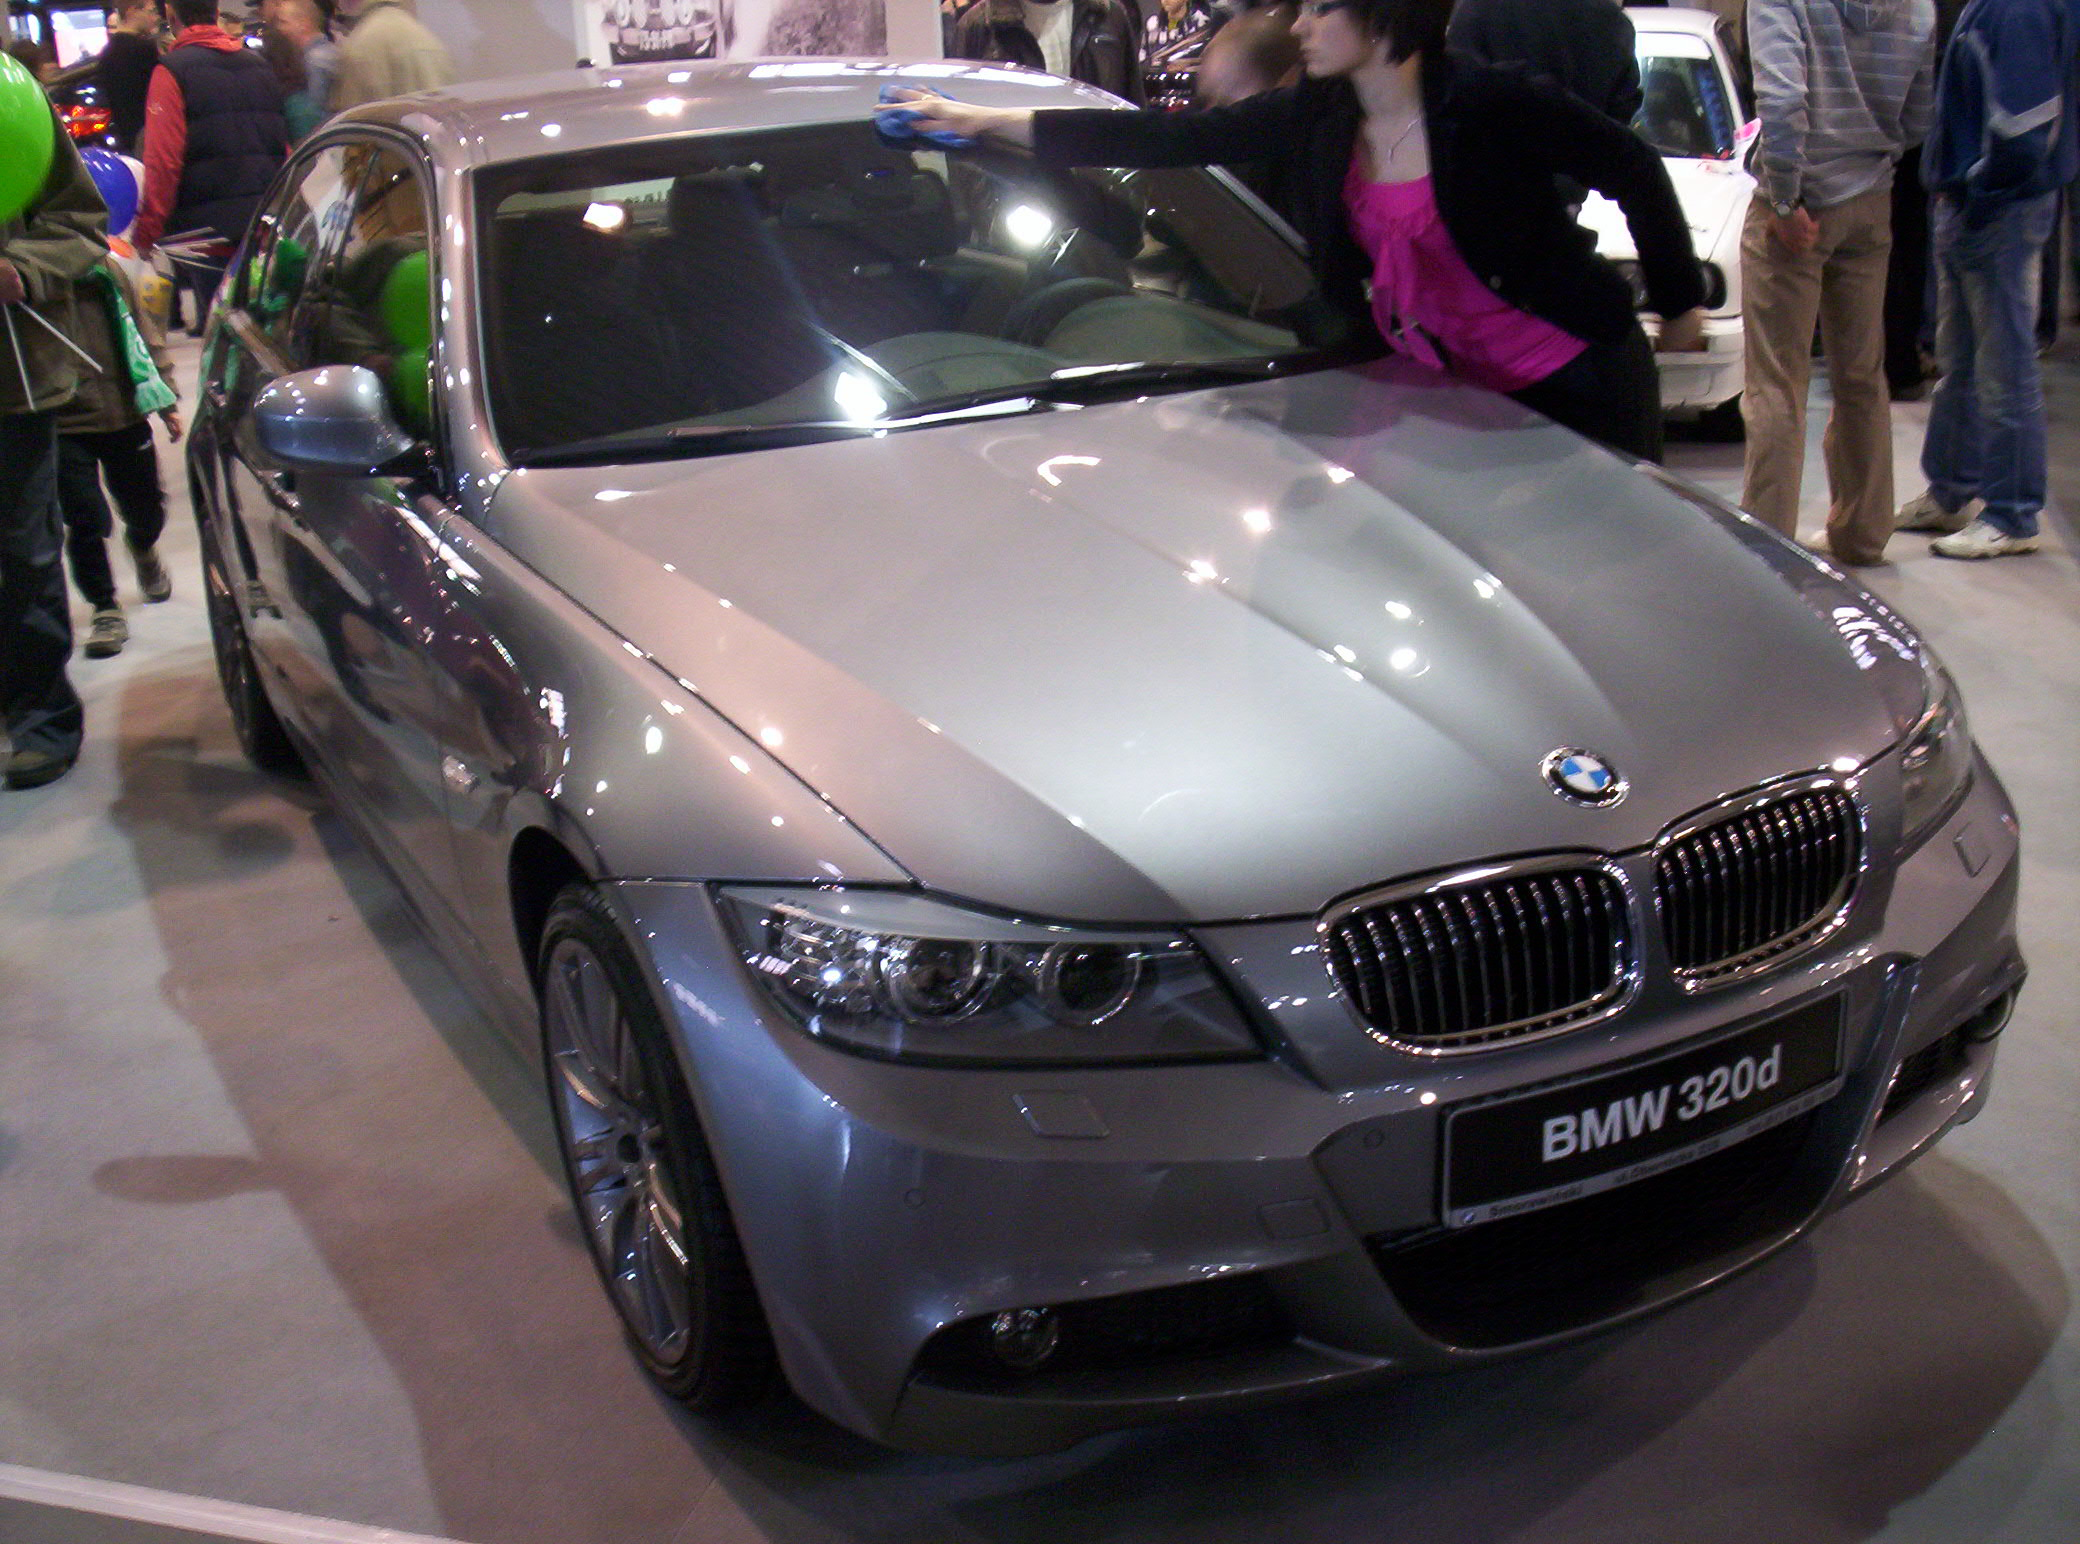 file bmw 320d e90 front poznan wikimedia commons. Black Bedroom Furniture Sets. Home Design Ideas